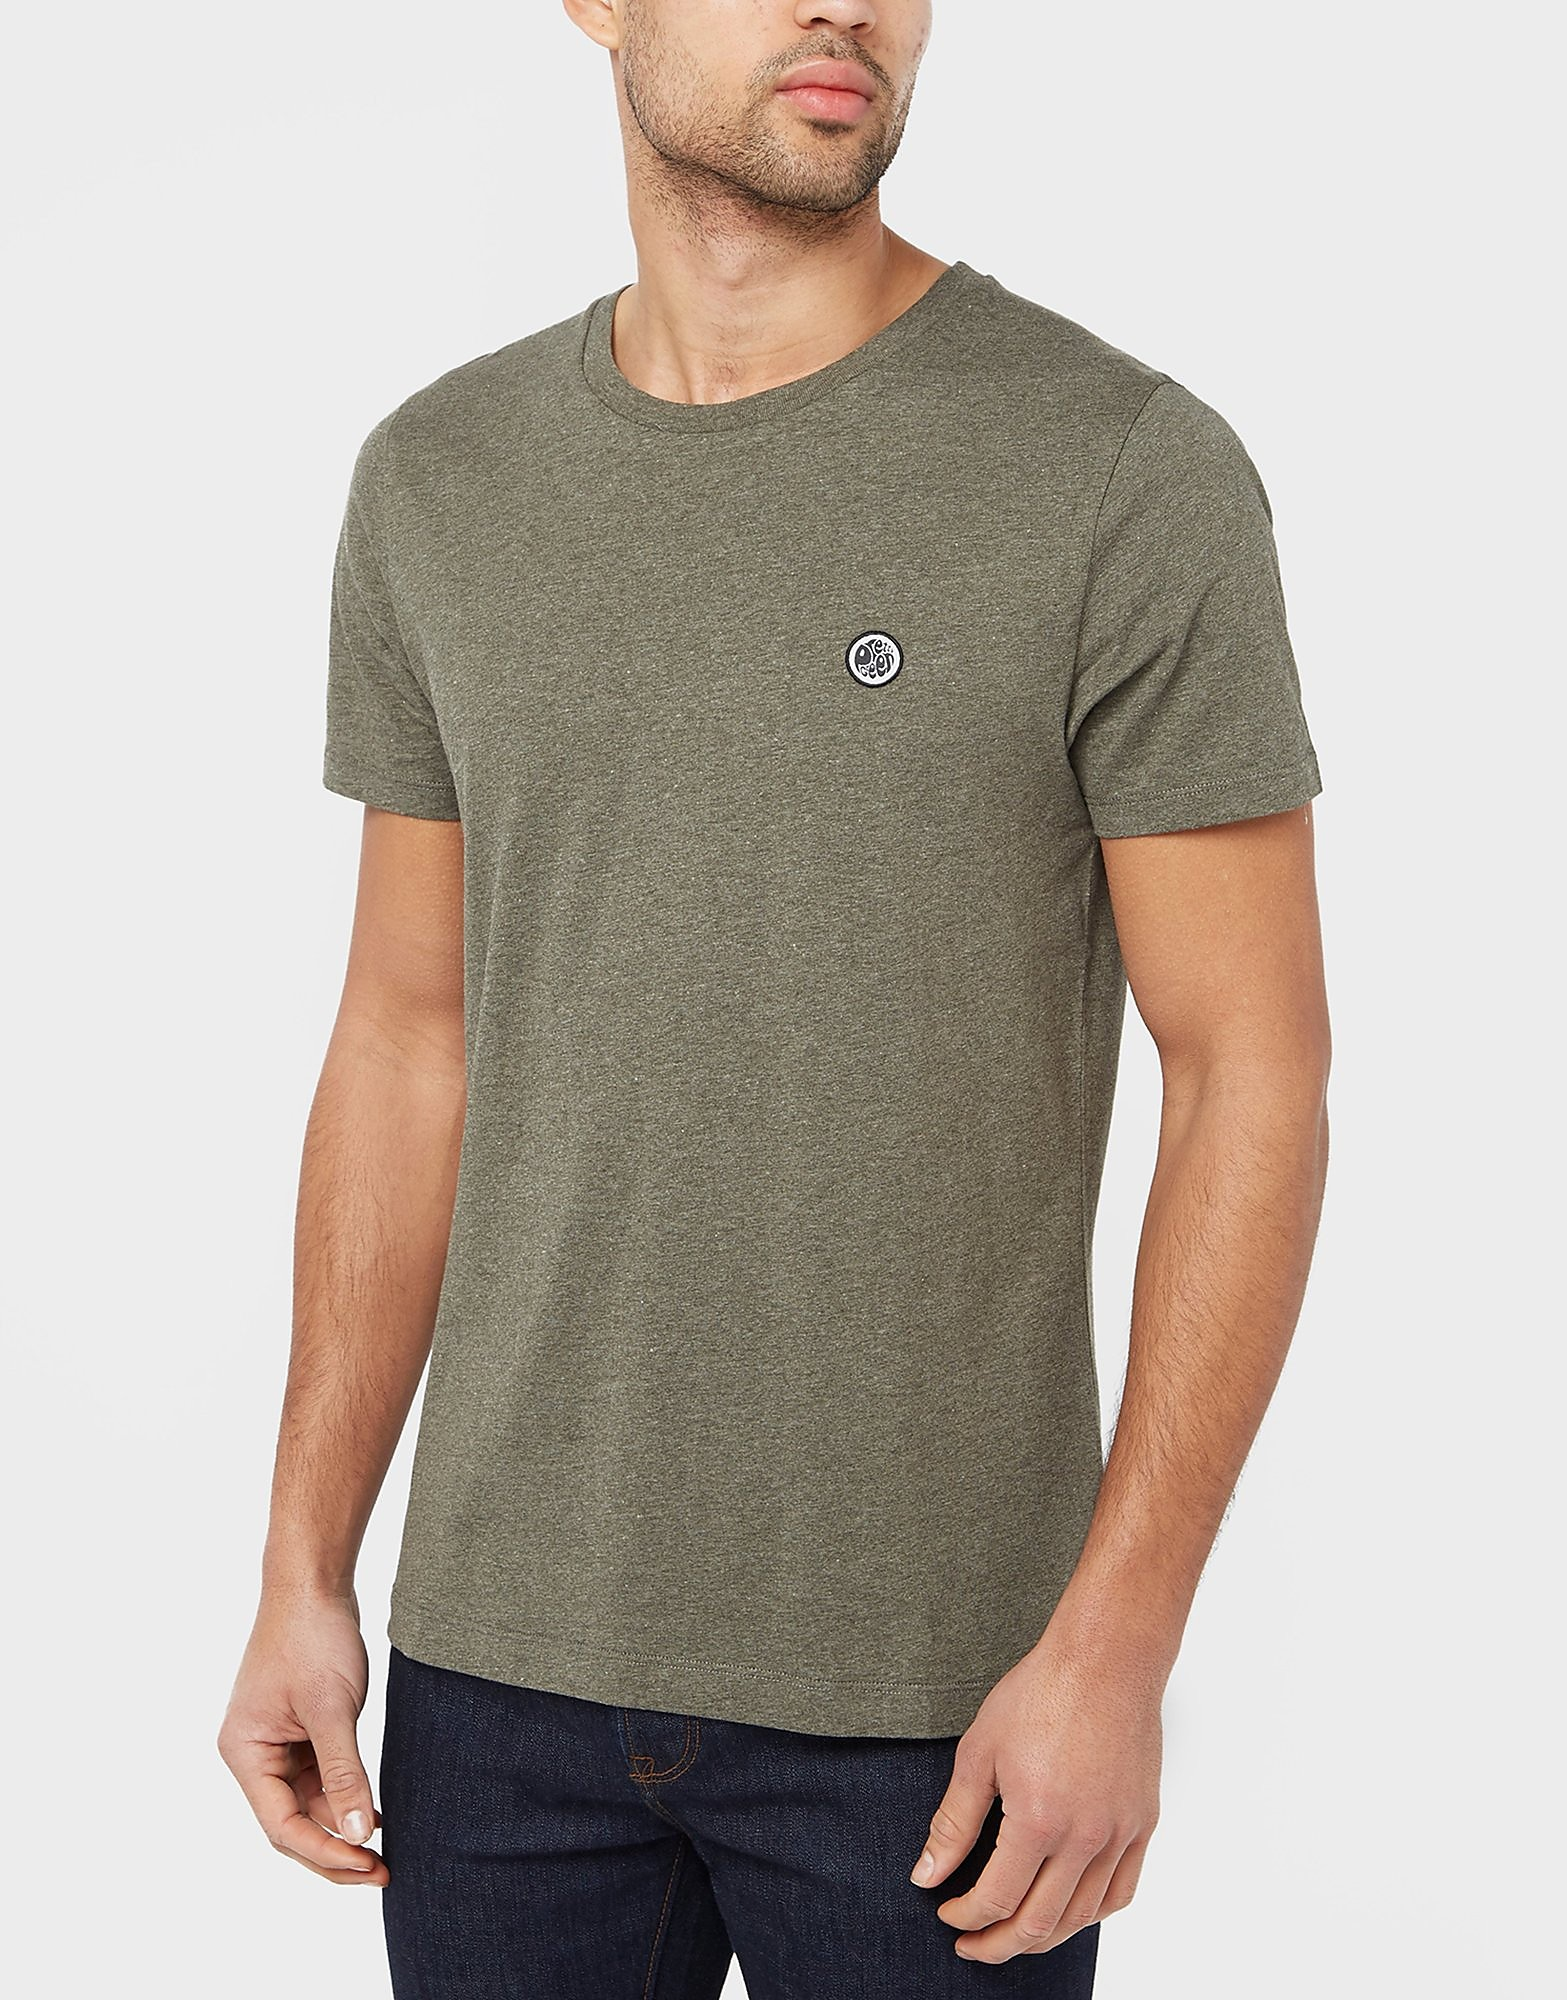 Pretty Green S&P Crew Neck Short Sleeve T-Shirt - Exclusive